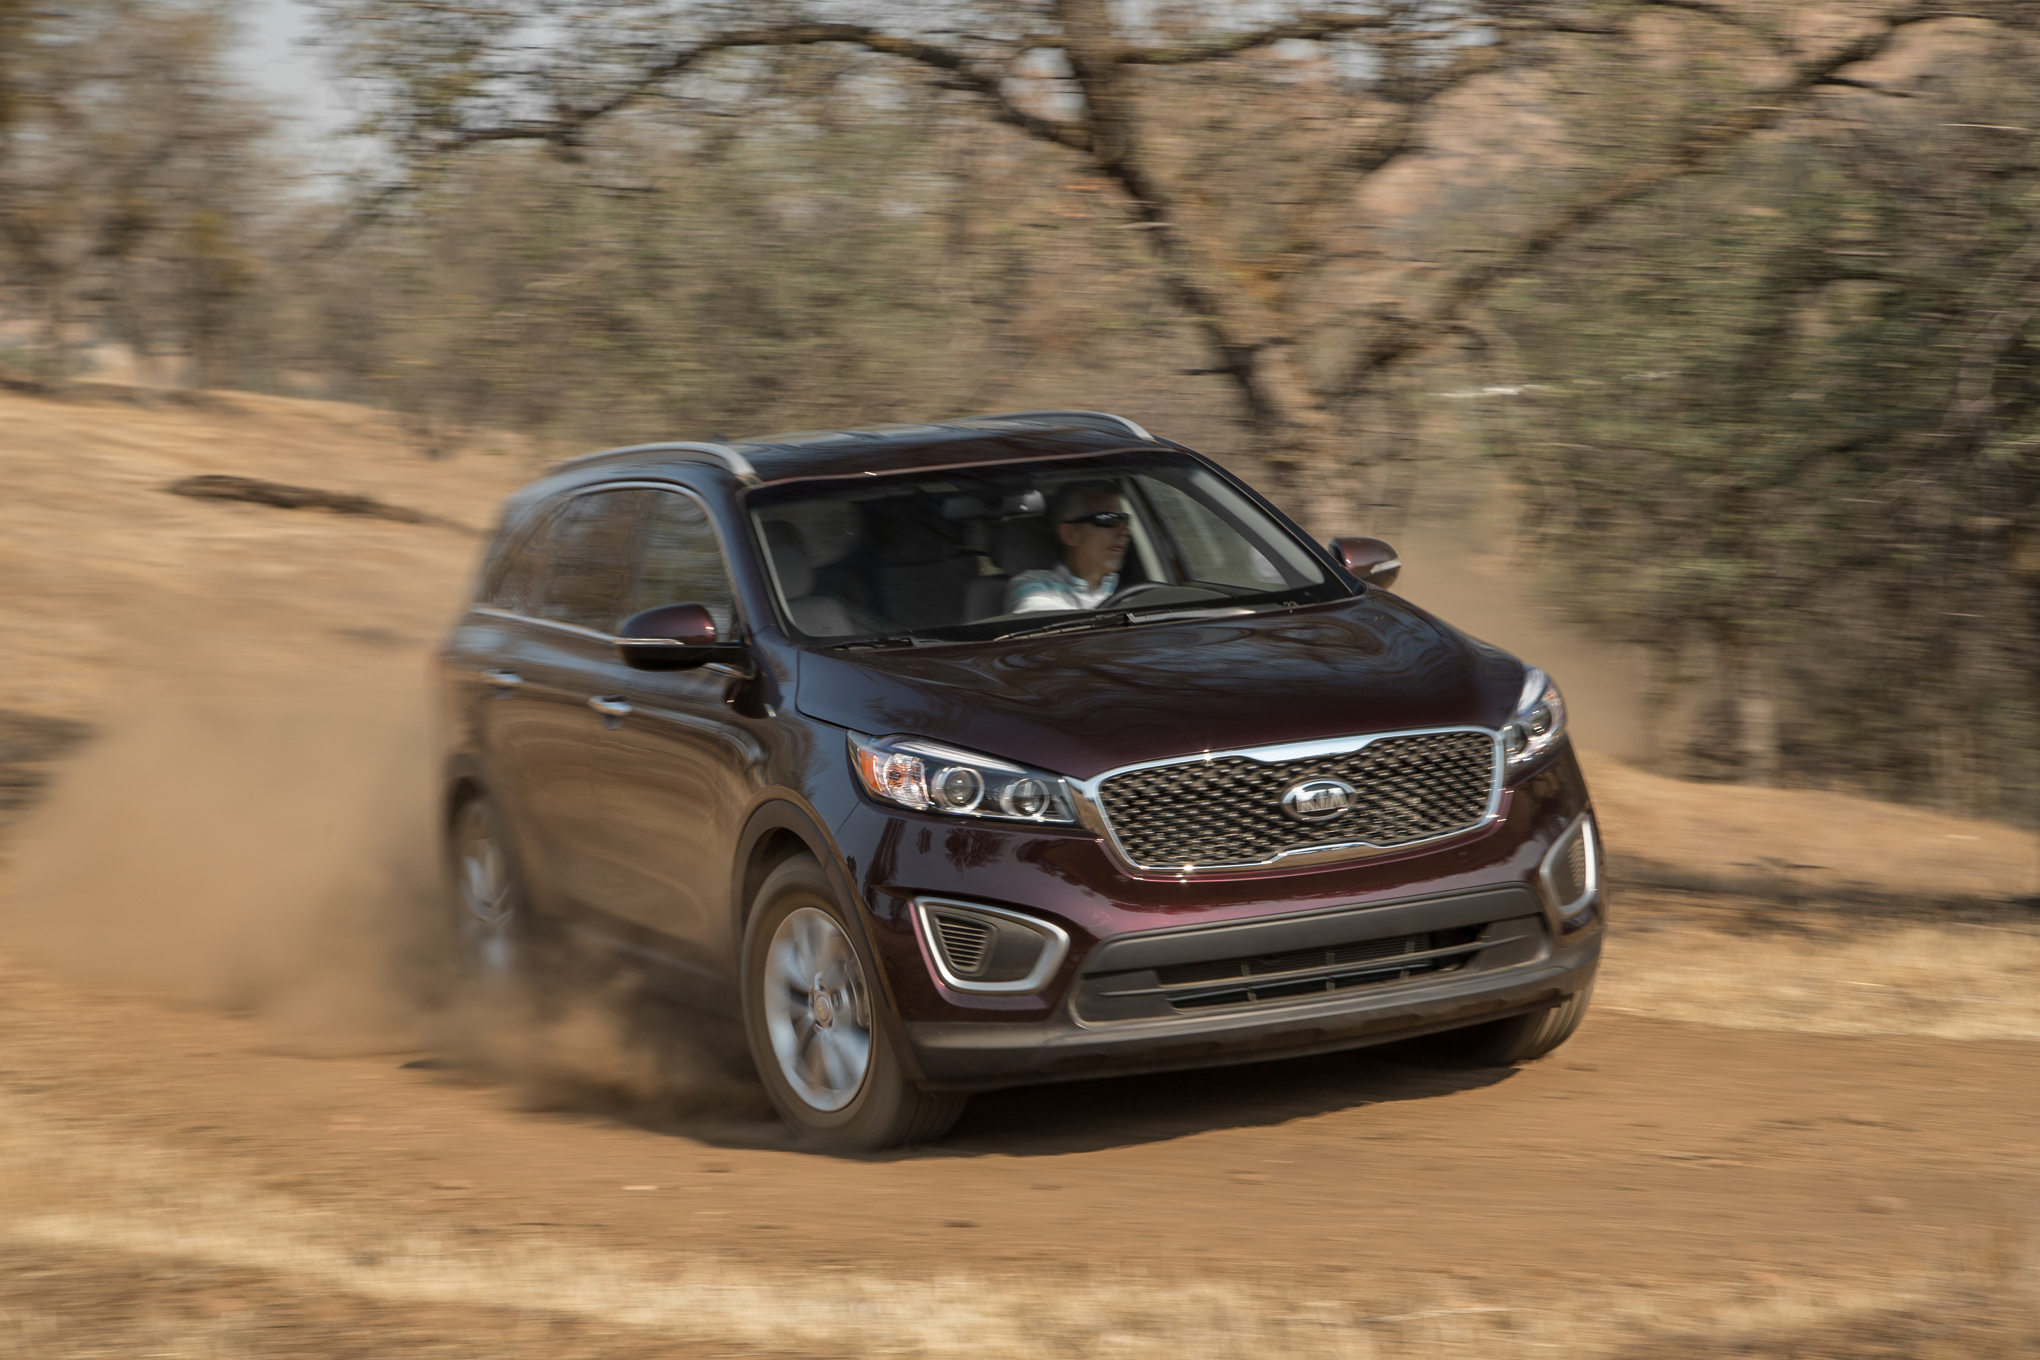 The 2016 Kia Sorento LX FWD I-4